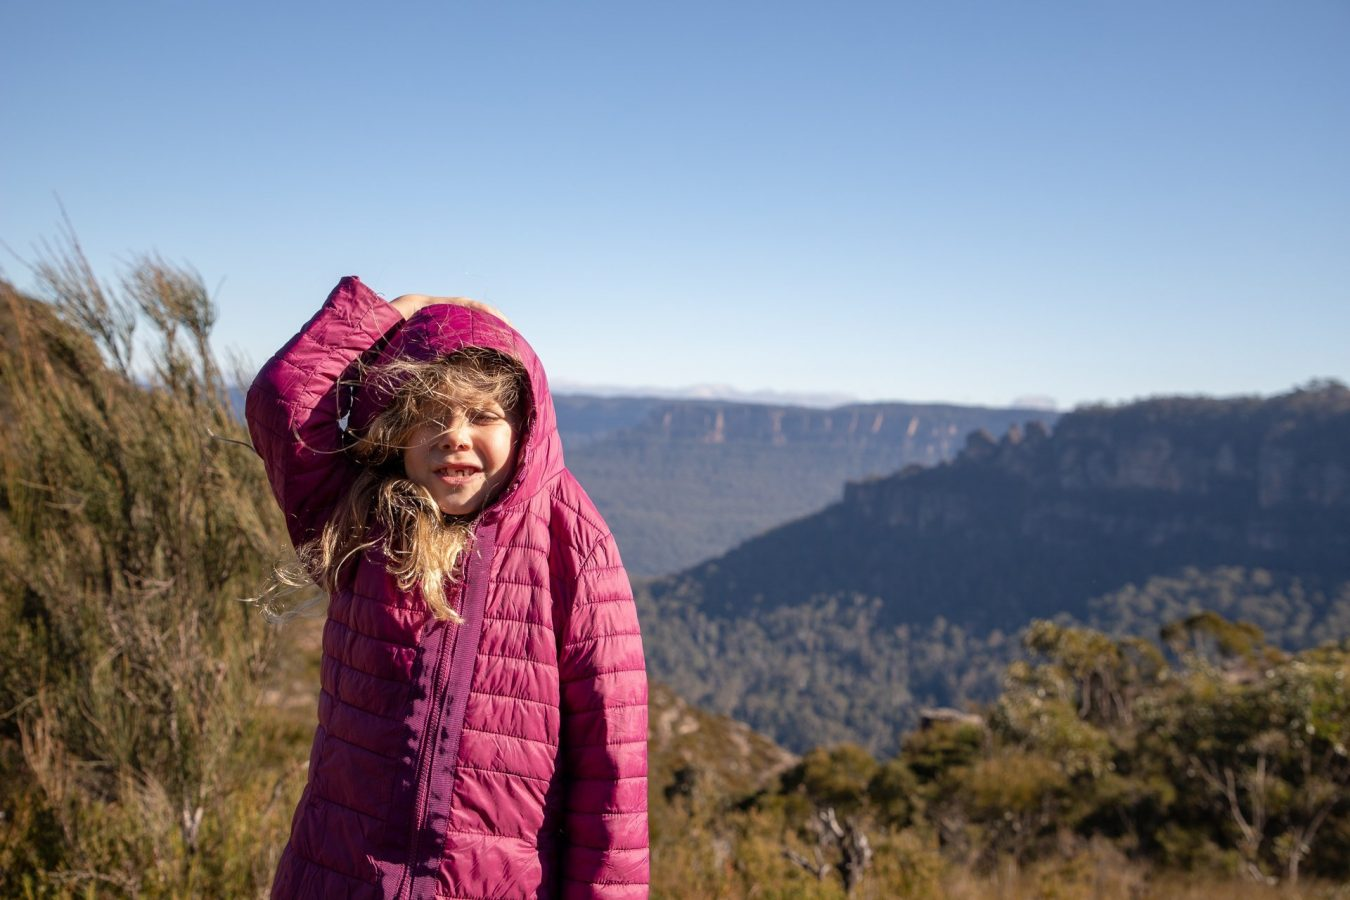 A windy day in the Blue Mountains